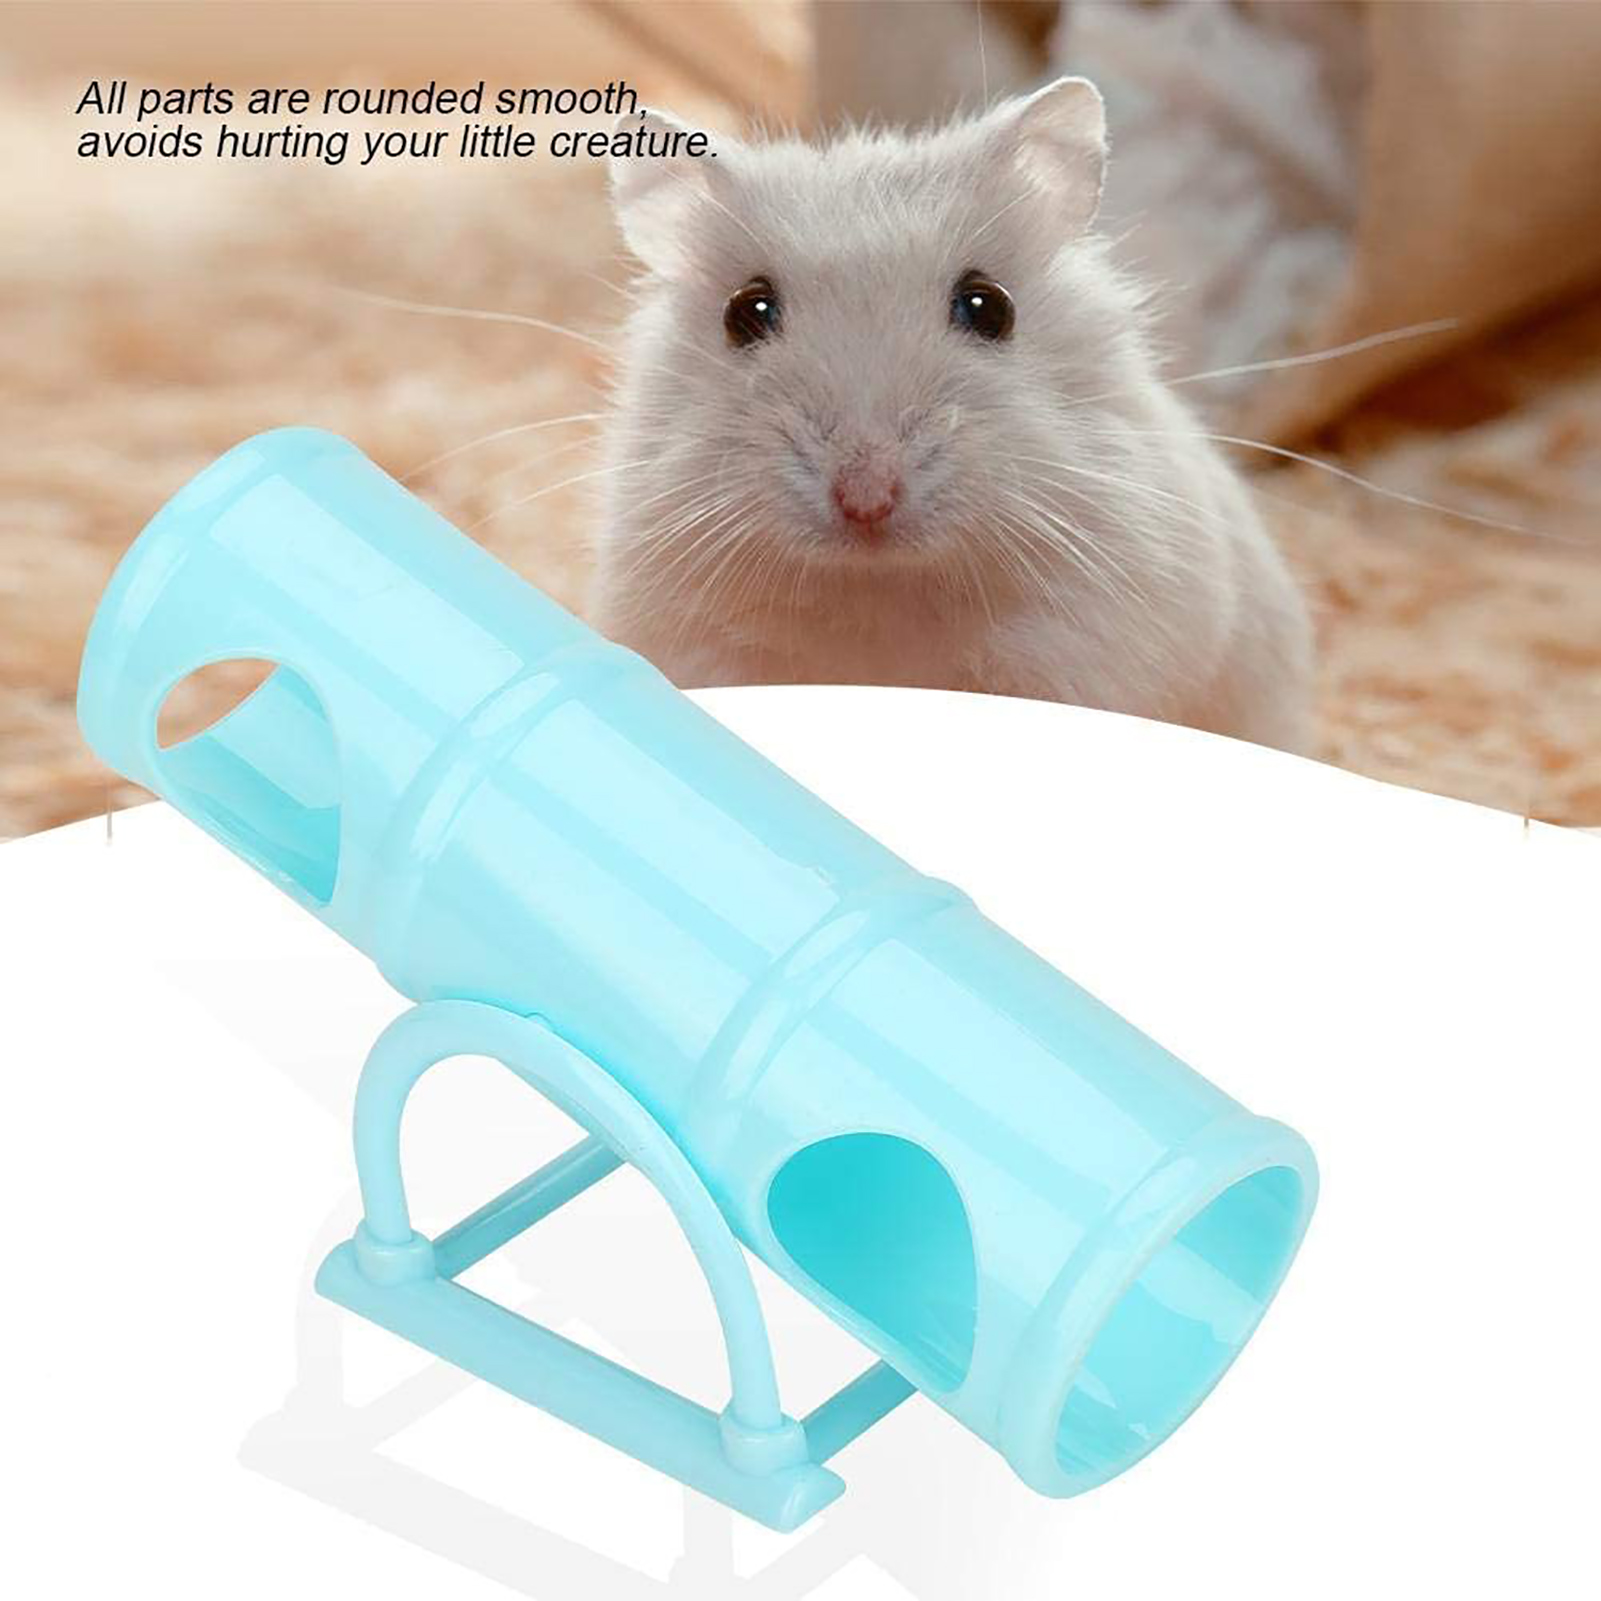 Hamster Funny Seesaw Toy Anti-aging Waterproof Pet Sports Channel Toy Small Pet Intelligence Training Pipe Toy For Guinea Pig